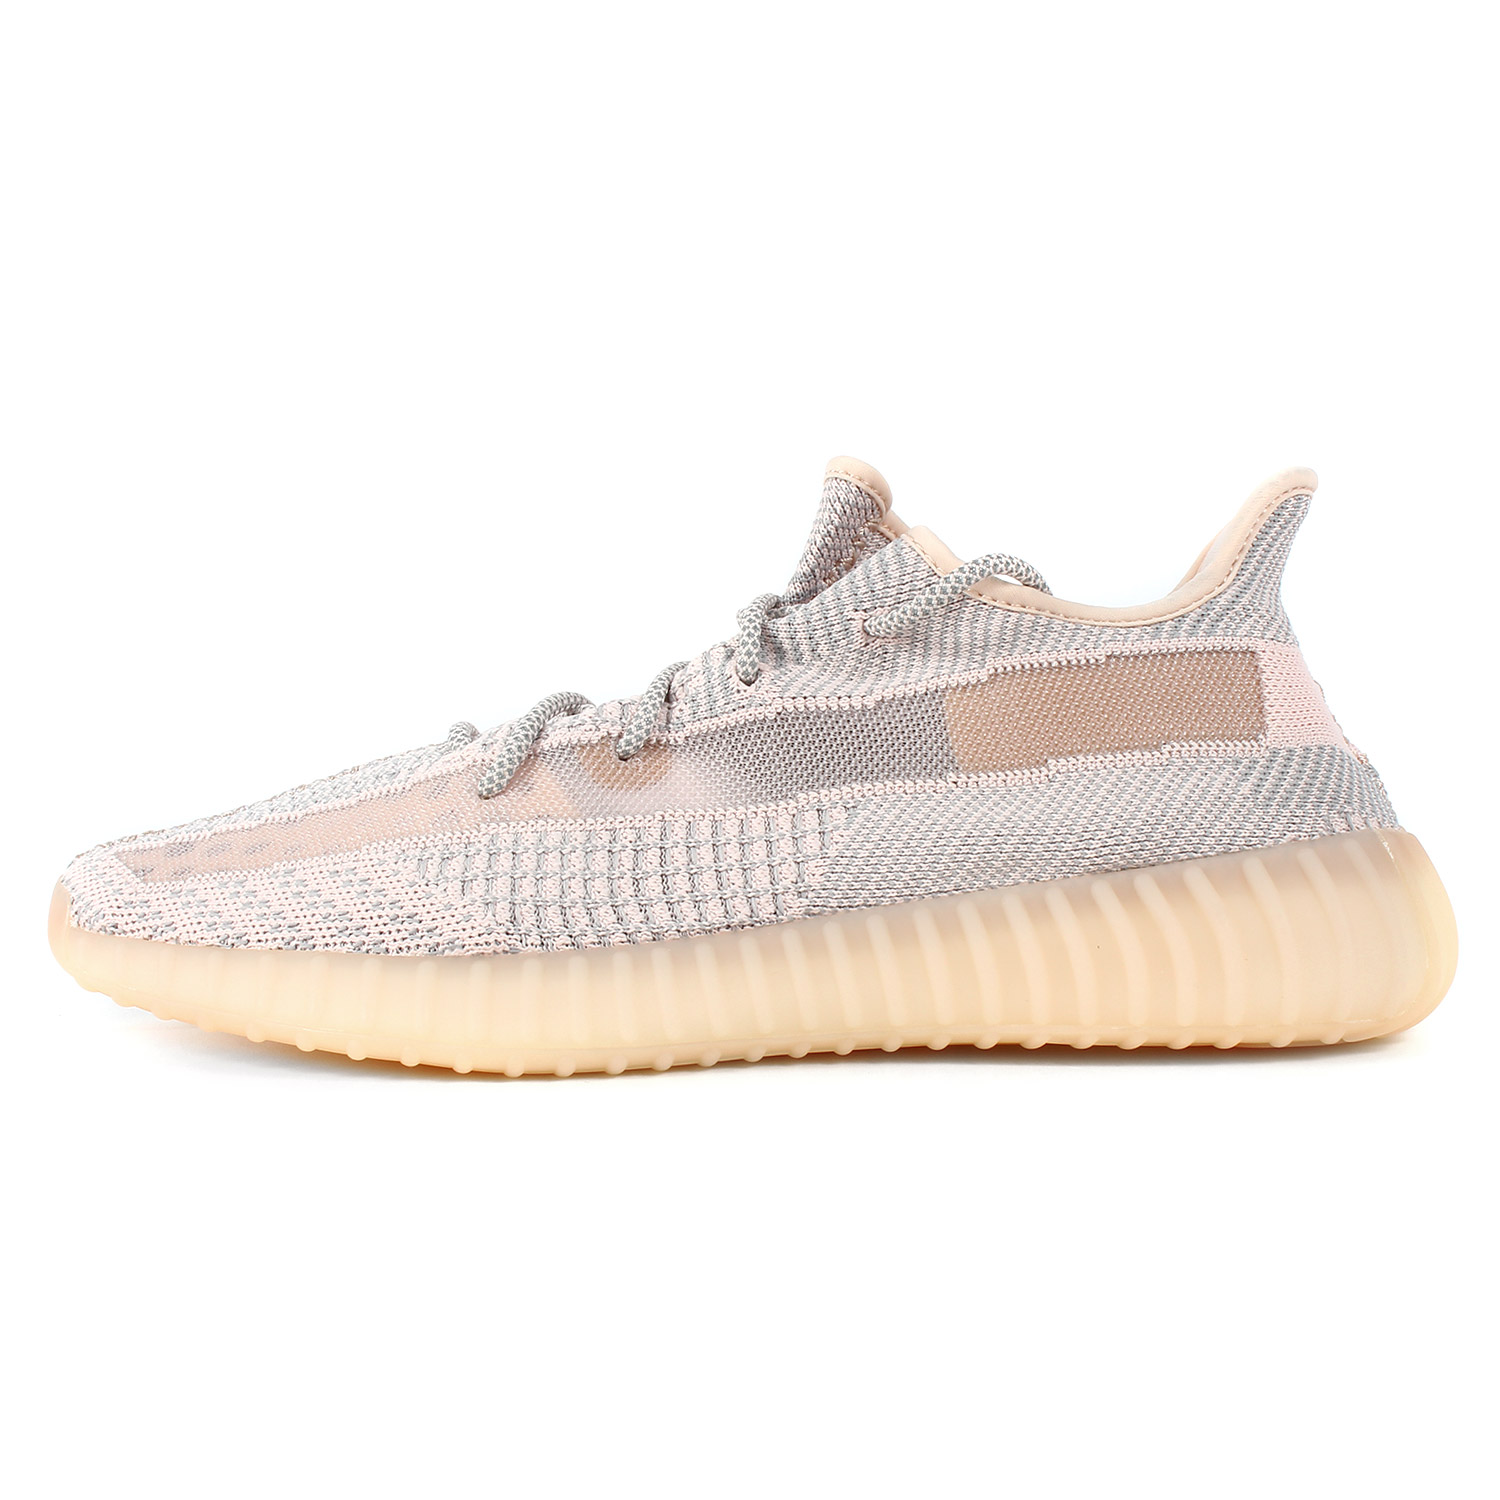 19SS YEEZY BOOST 350 V2 SYNTH (FV5578)